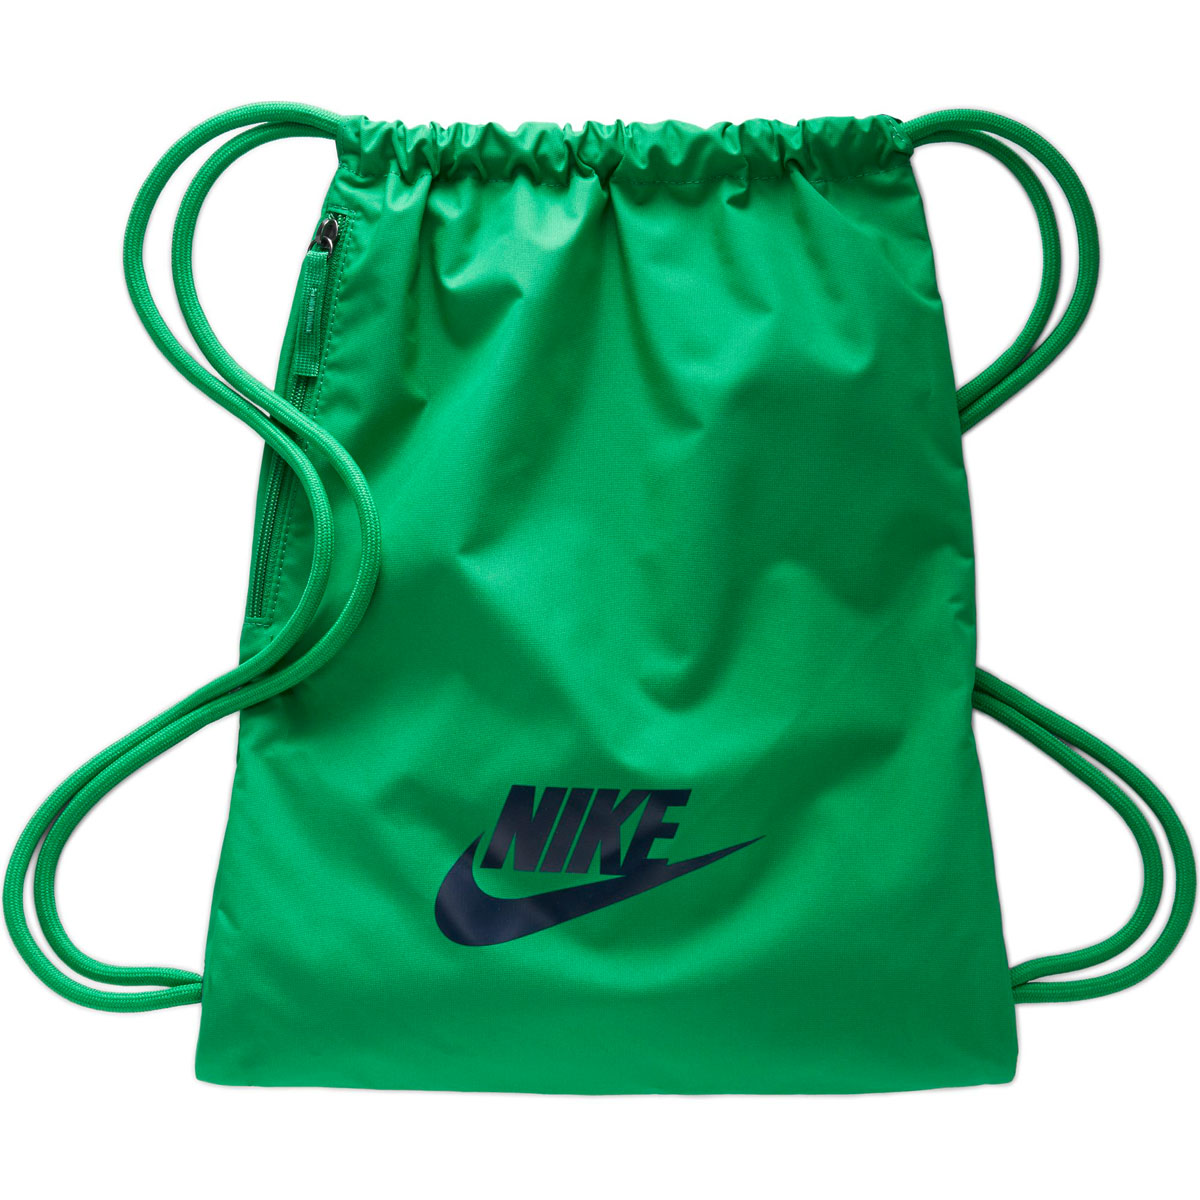 Heritage 2.0 Gymsack, Green/Blue, swatch